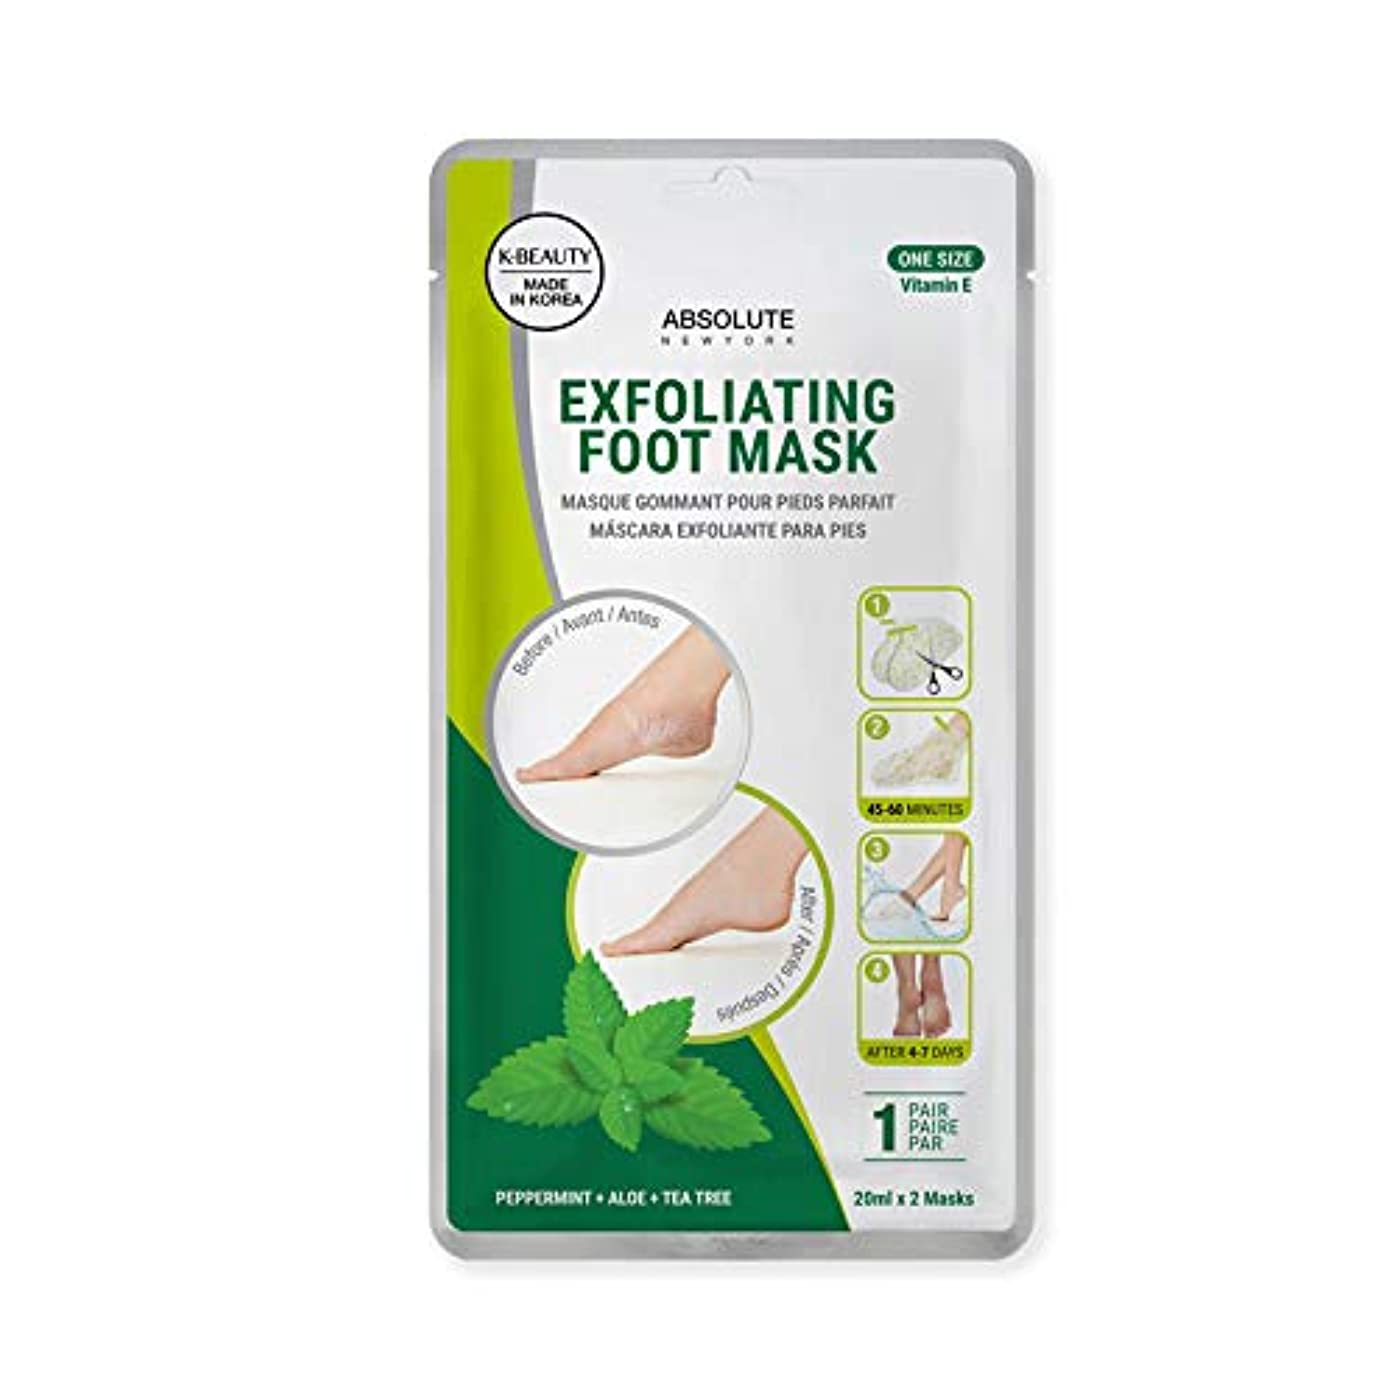 砦然とした然とした(3 Pack) ABSOLUTE Exfoliating Foot Mask - Peppermint + Aloe + Tea Tree (並行輸入品)